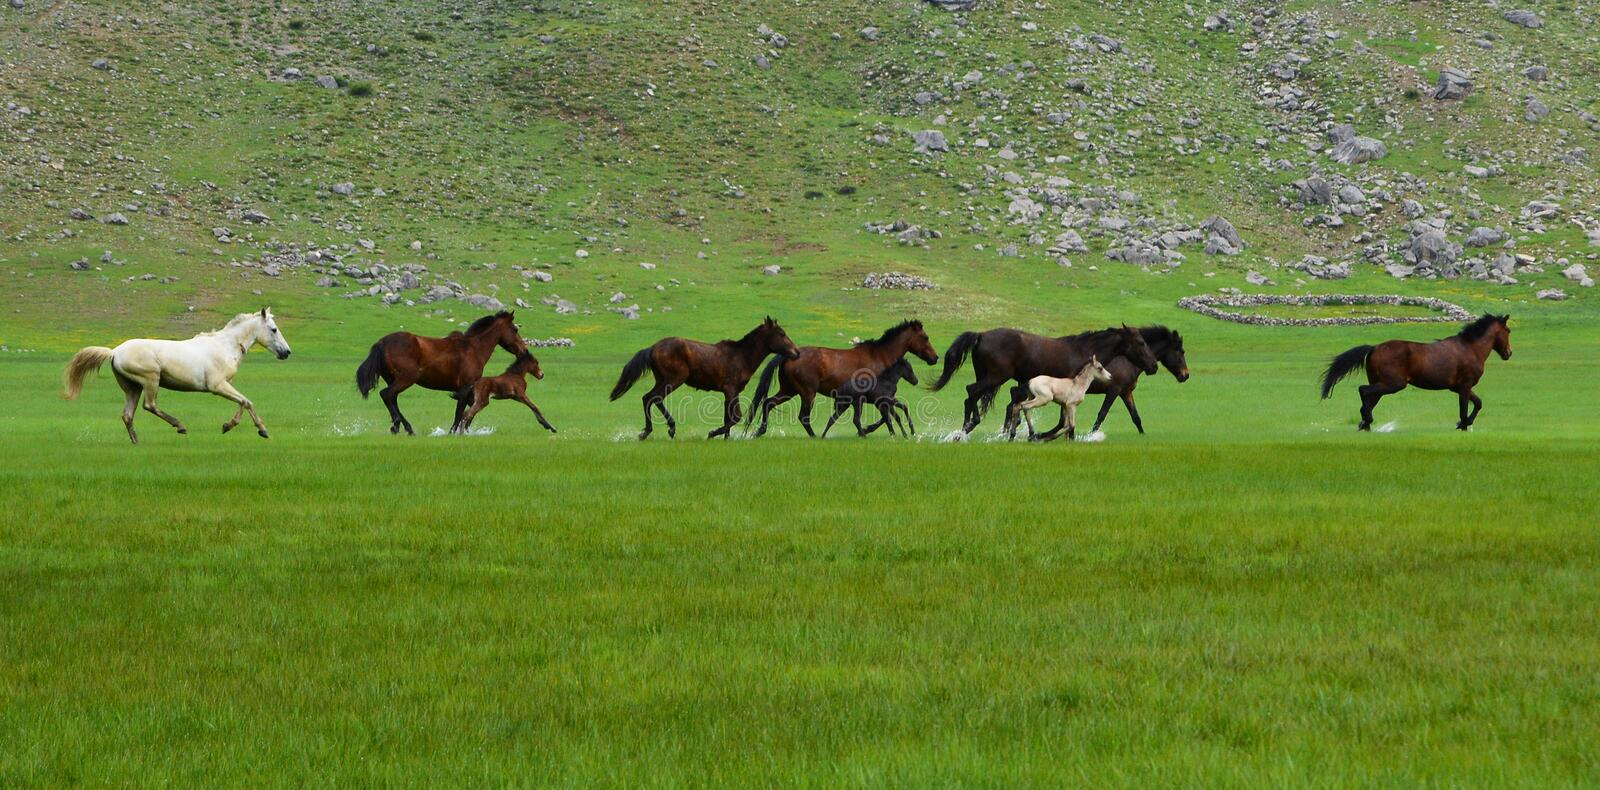 Galloping horses. Horse herd in mountain areas.Galloping horses.nwild horses royalty free stock photography